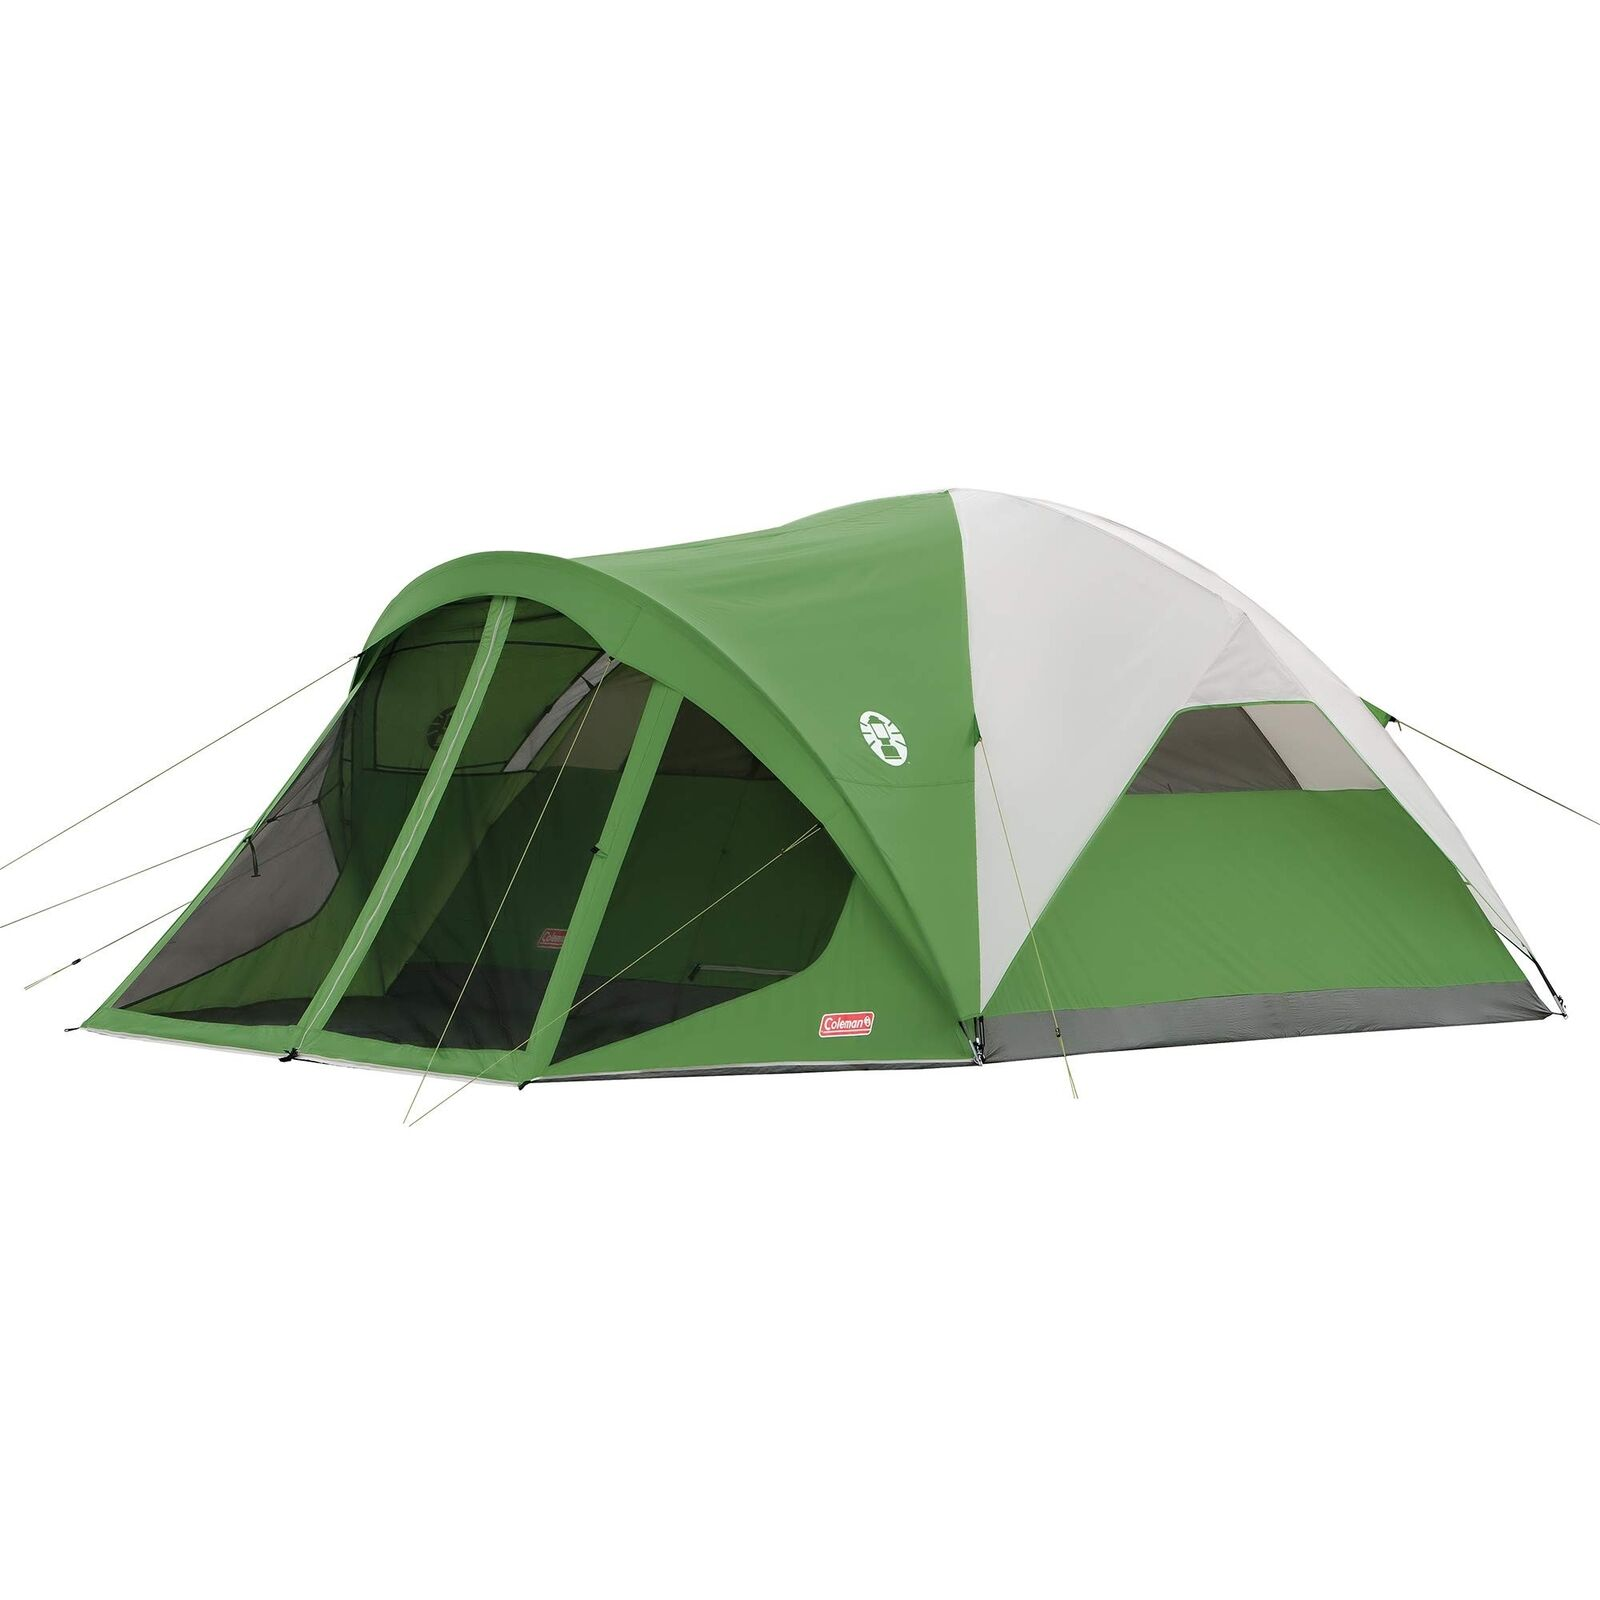 Coleman Evanston Dome Tent with Screen Room  6-person  large selection